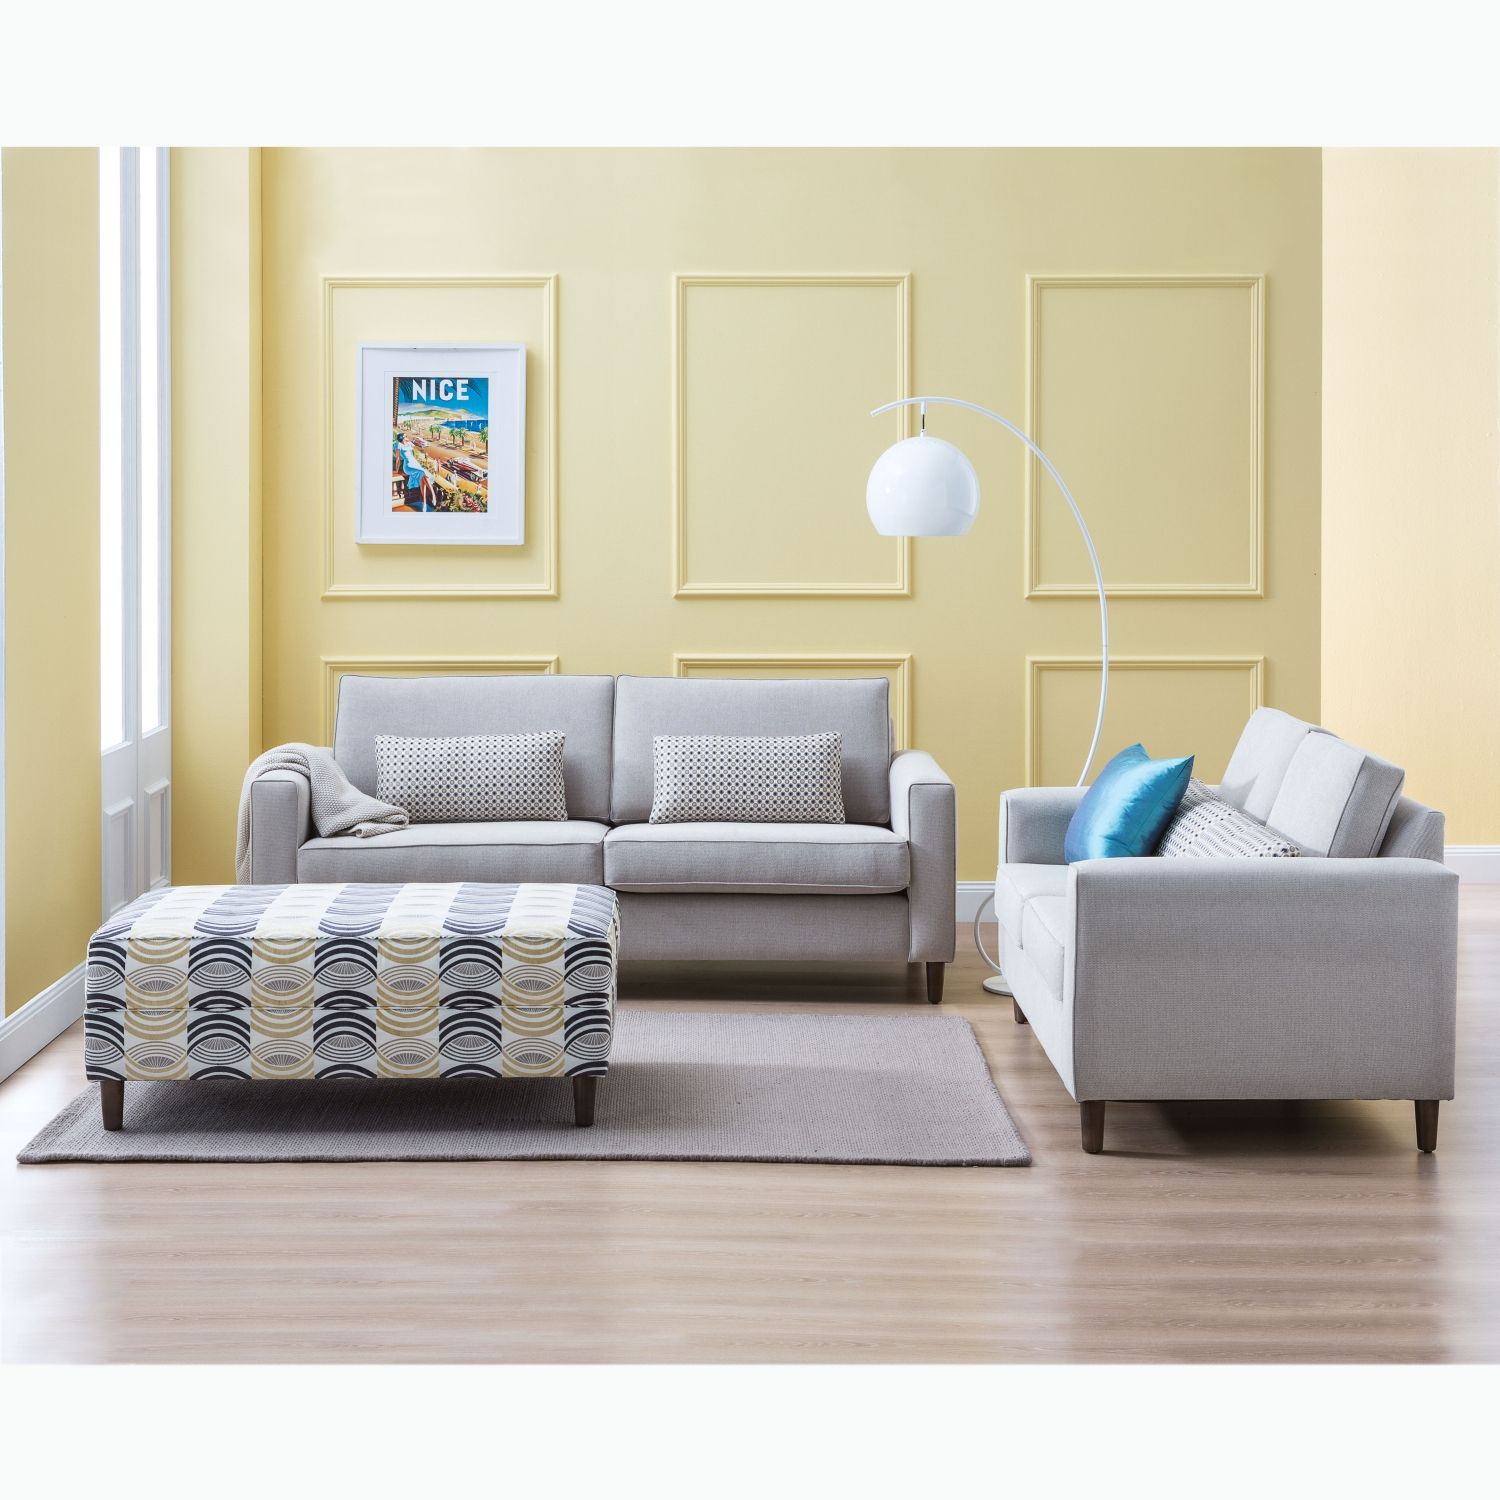 Domayne Sofas Lounges Sofa Bed Futon Leather Lounge More